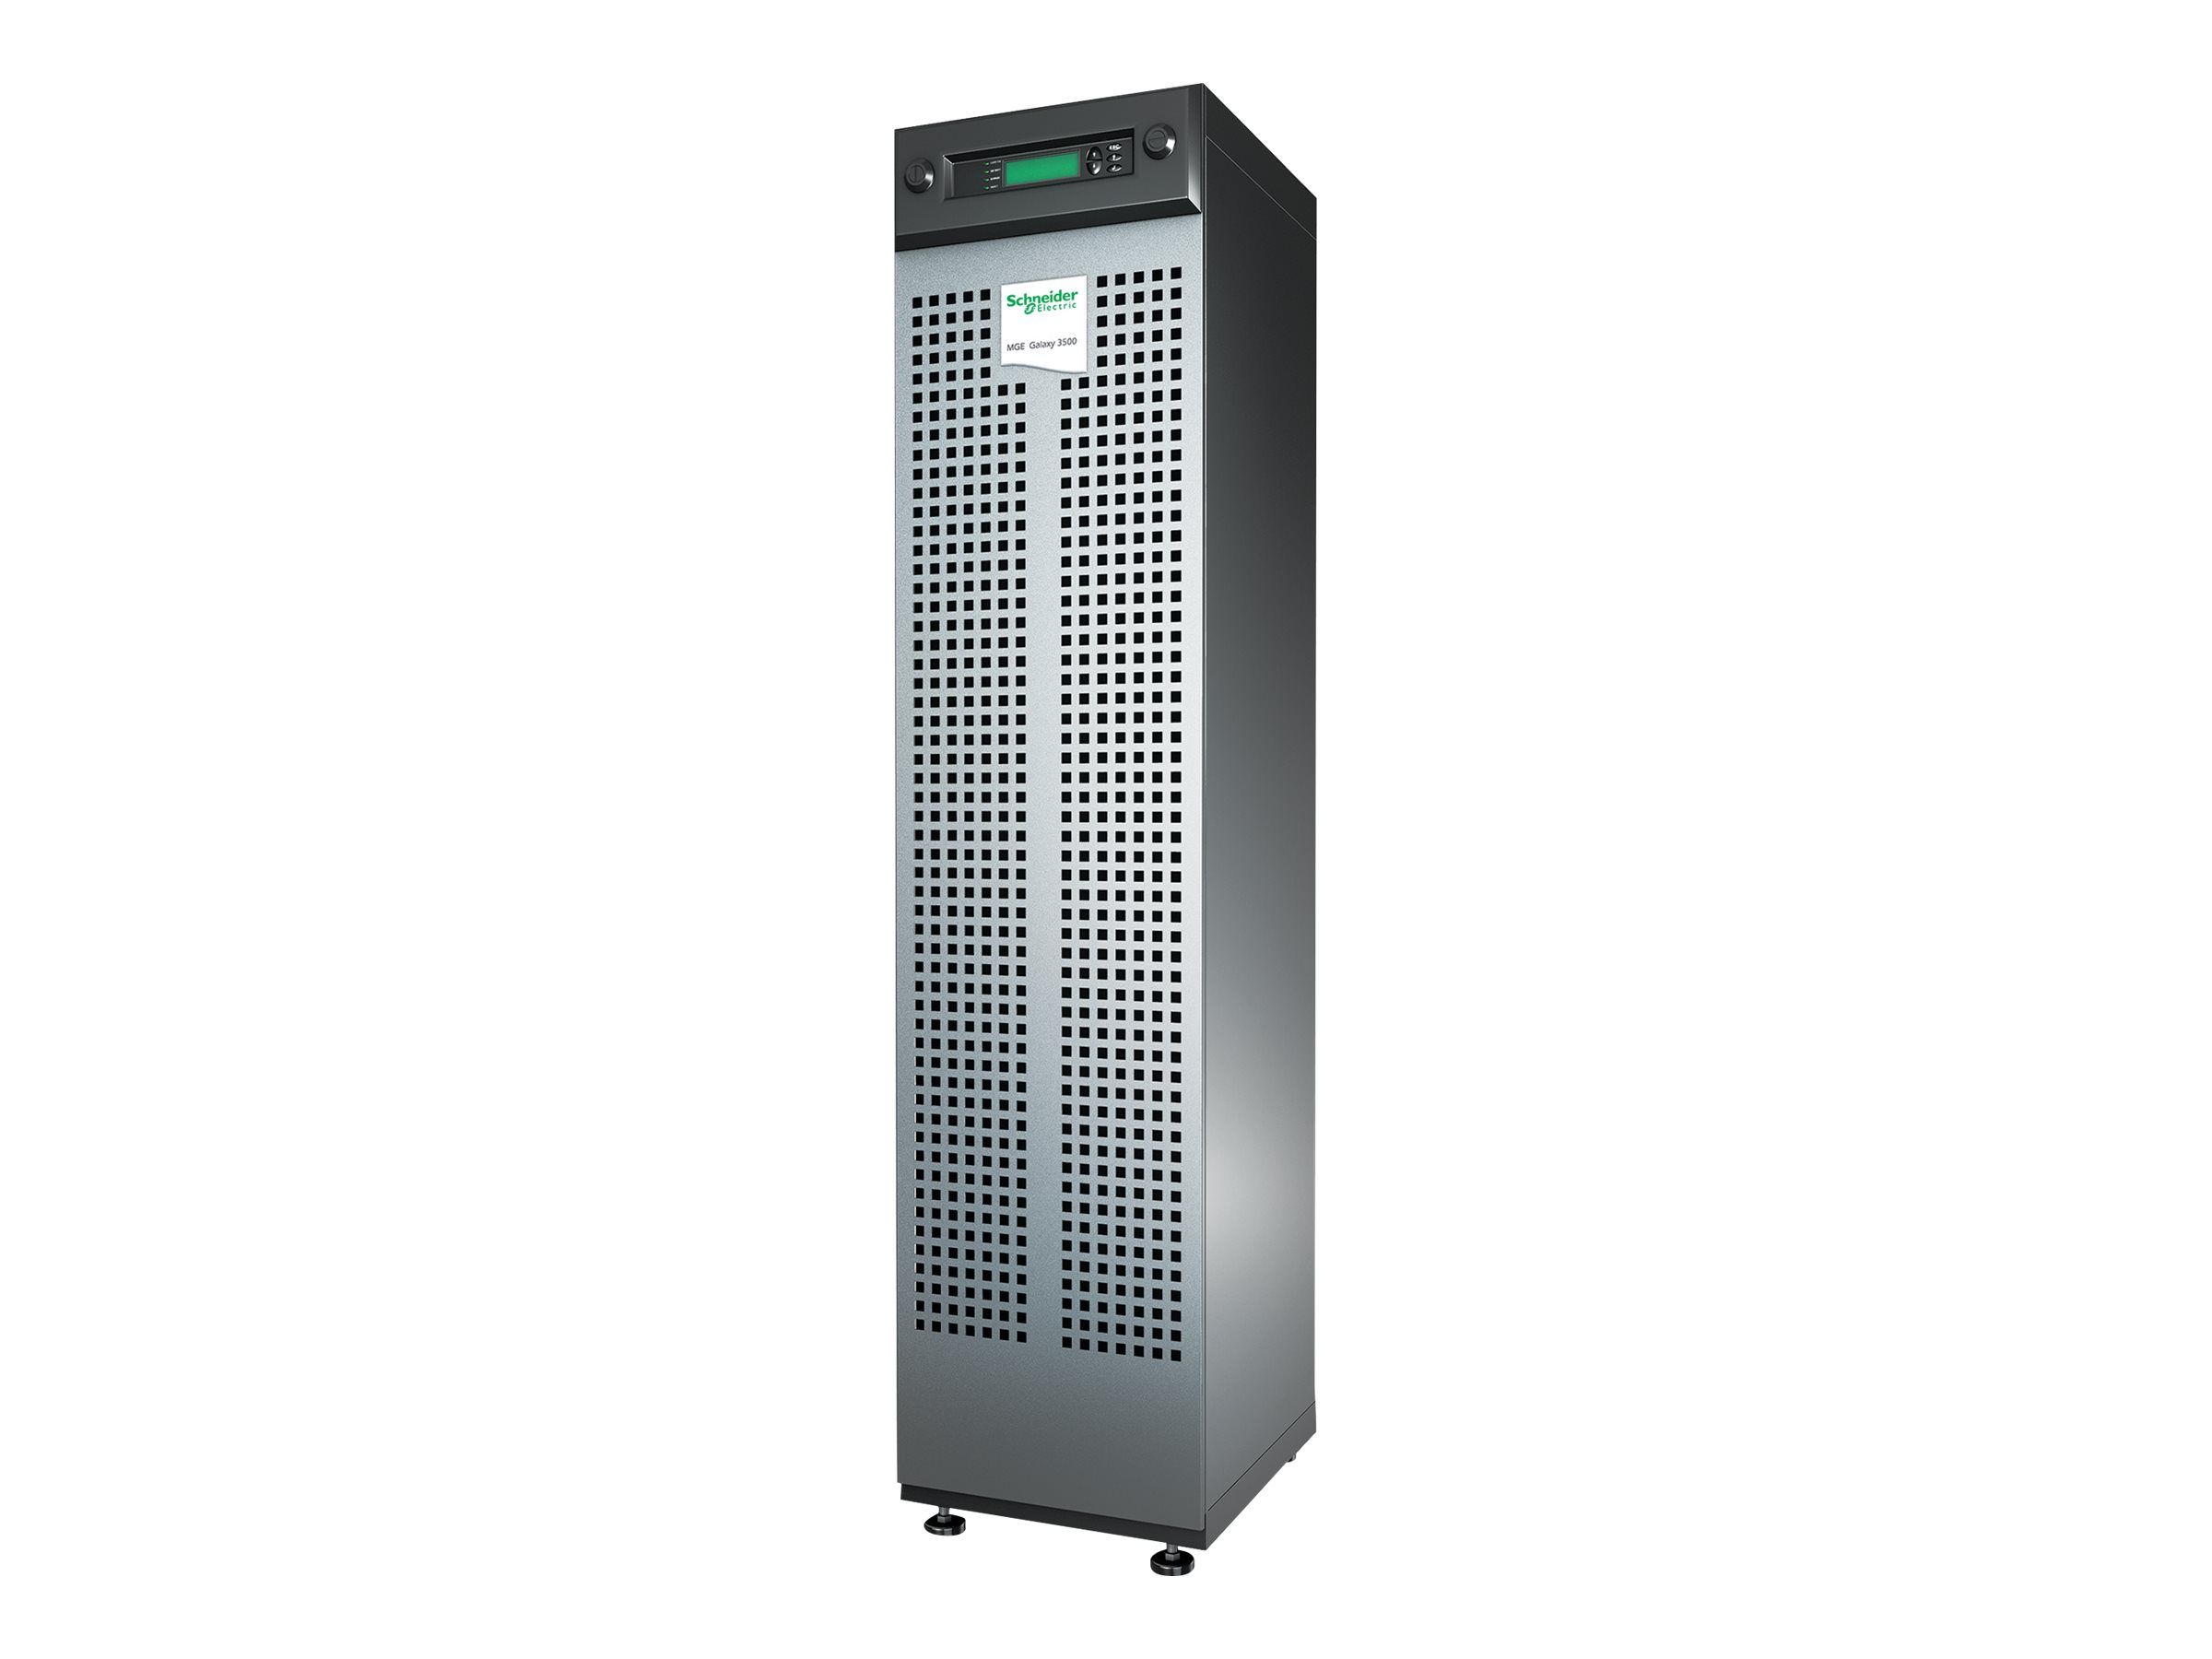 MGE Galaxy 3500 with 2 Battery Modules - UPS - 8 kW - 10000 VA